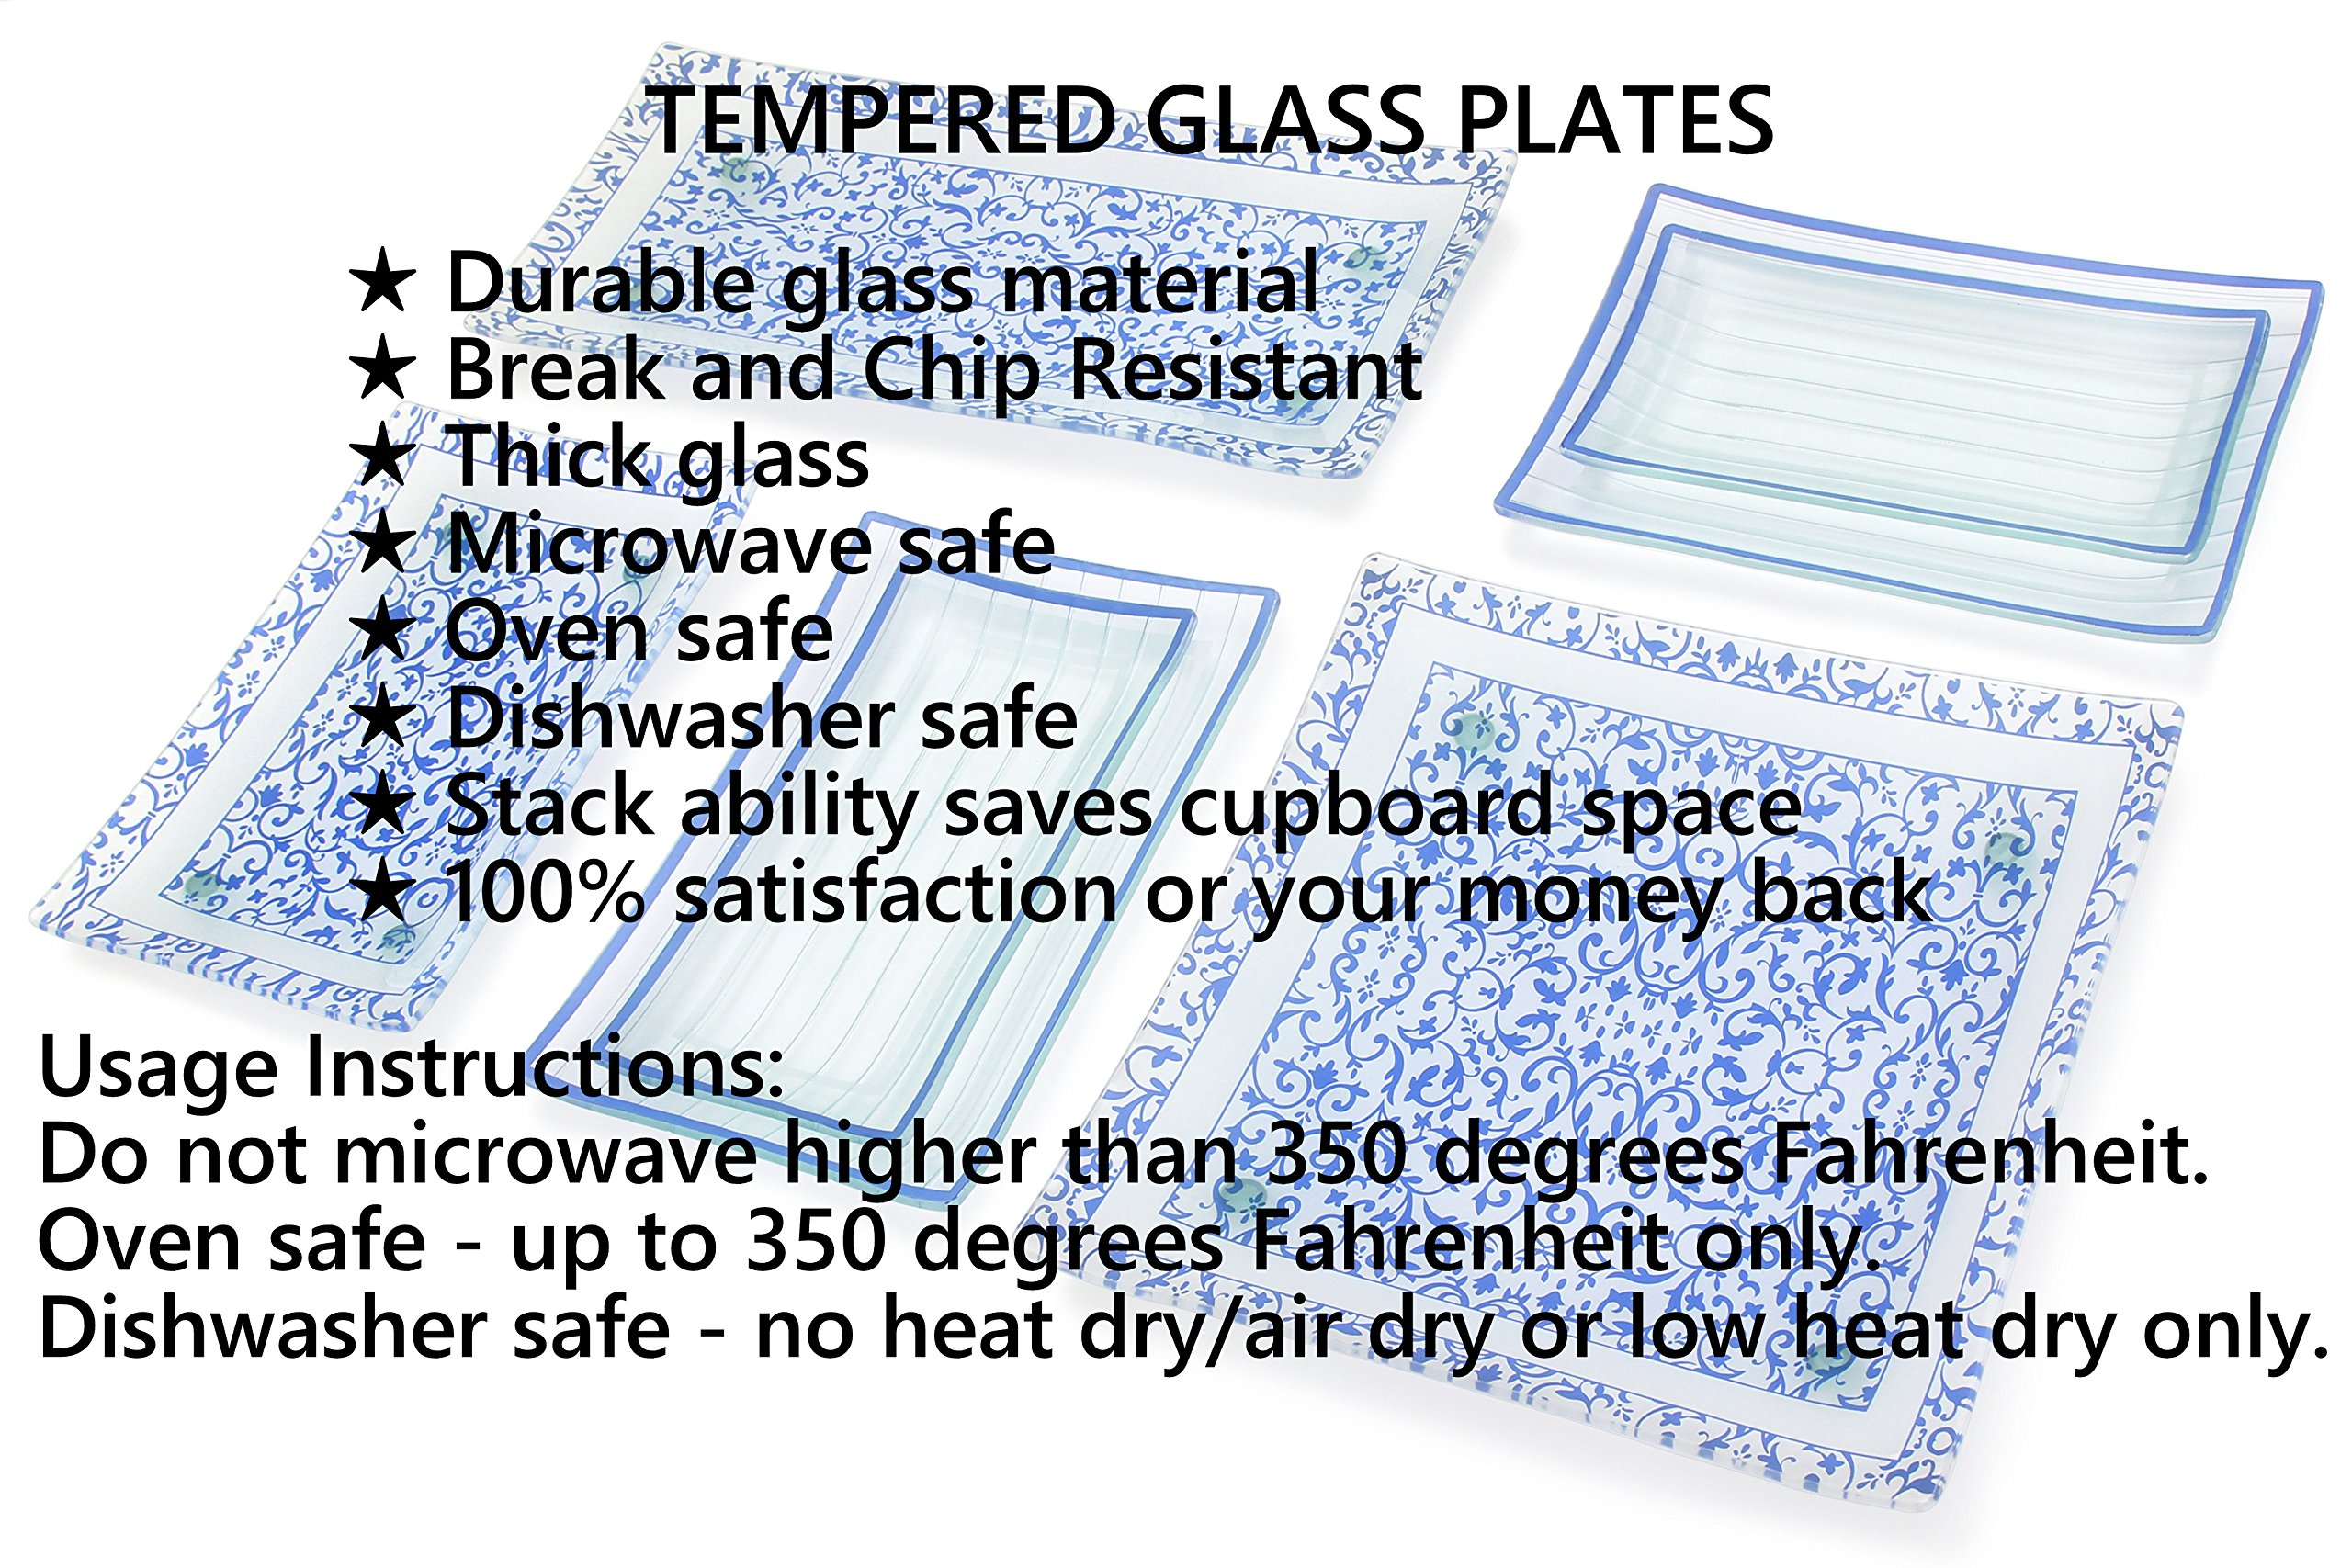 GAC Rectangular Tempered Glass Salad/Dessert Plate Set With Blue Trim, Service for 8, Break and Chip Resistant – Microwave and Oven Safe – Dishwasher Safe - Decorative Serving Plate by GAC (Image #6)